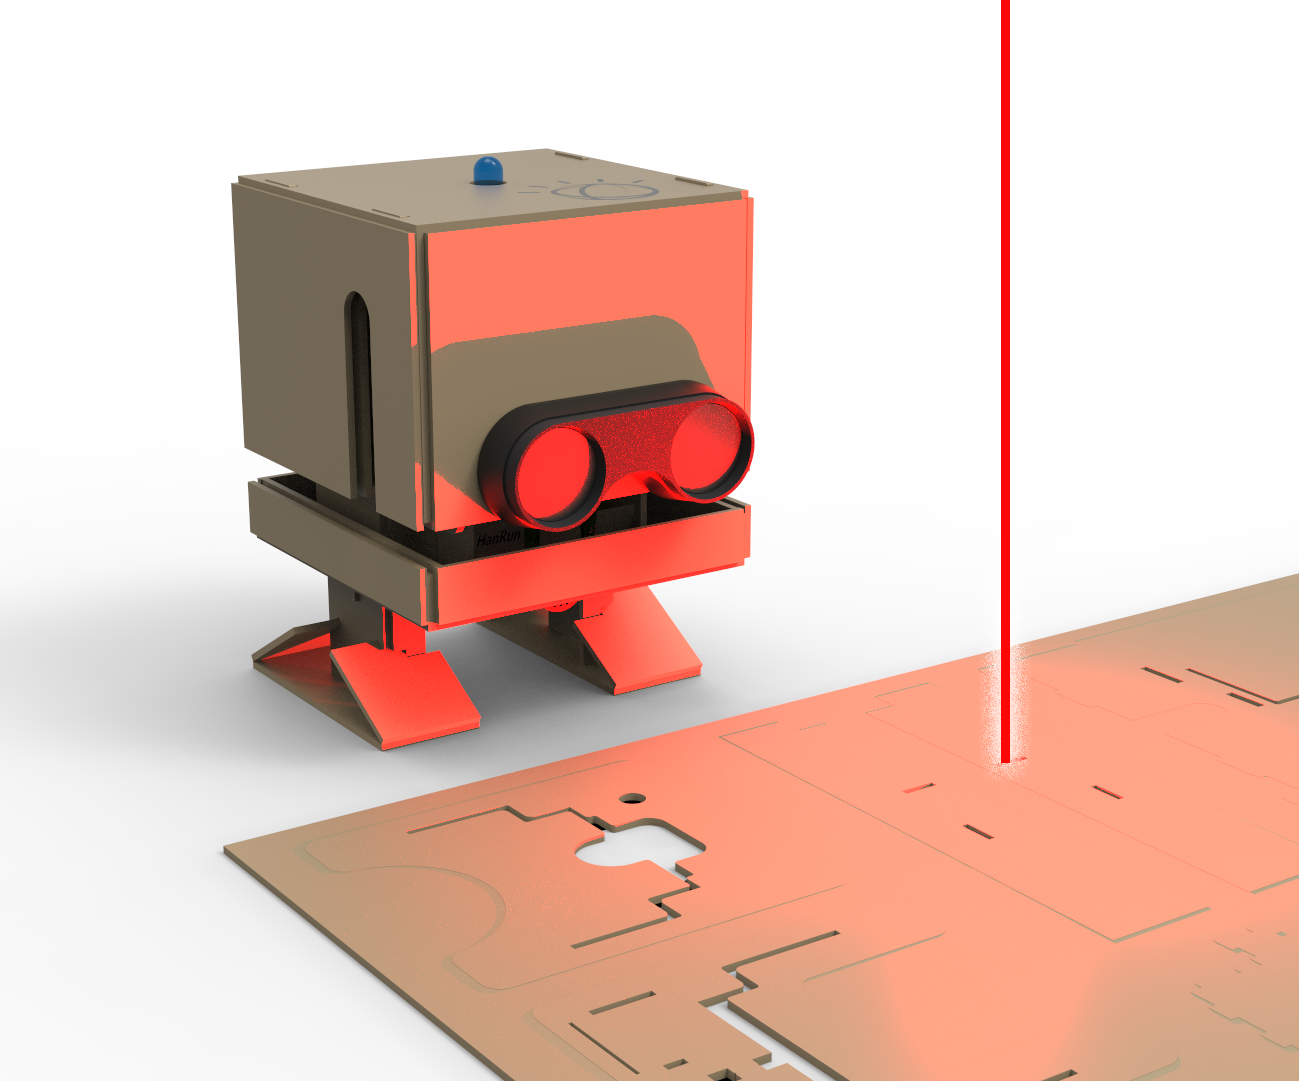 Build TJ Bot out of Cardboard